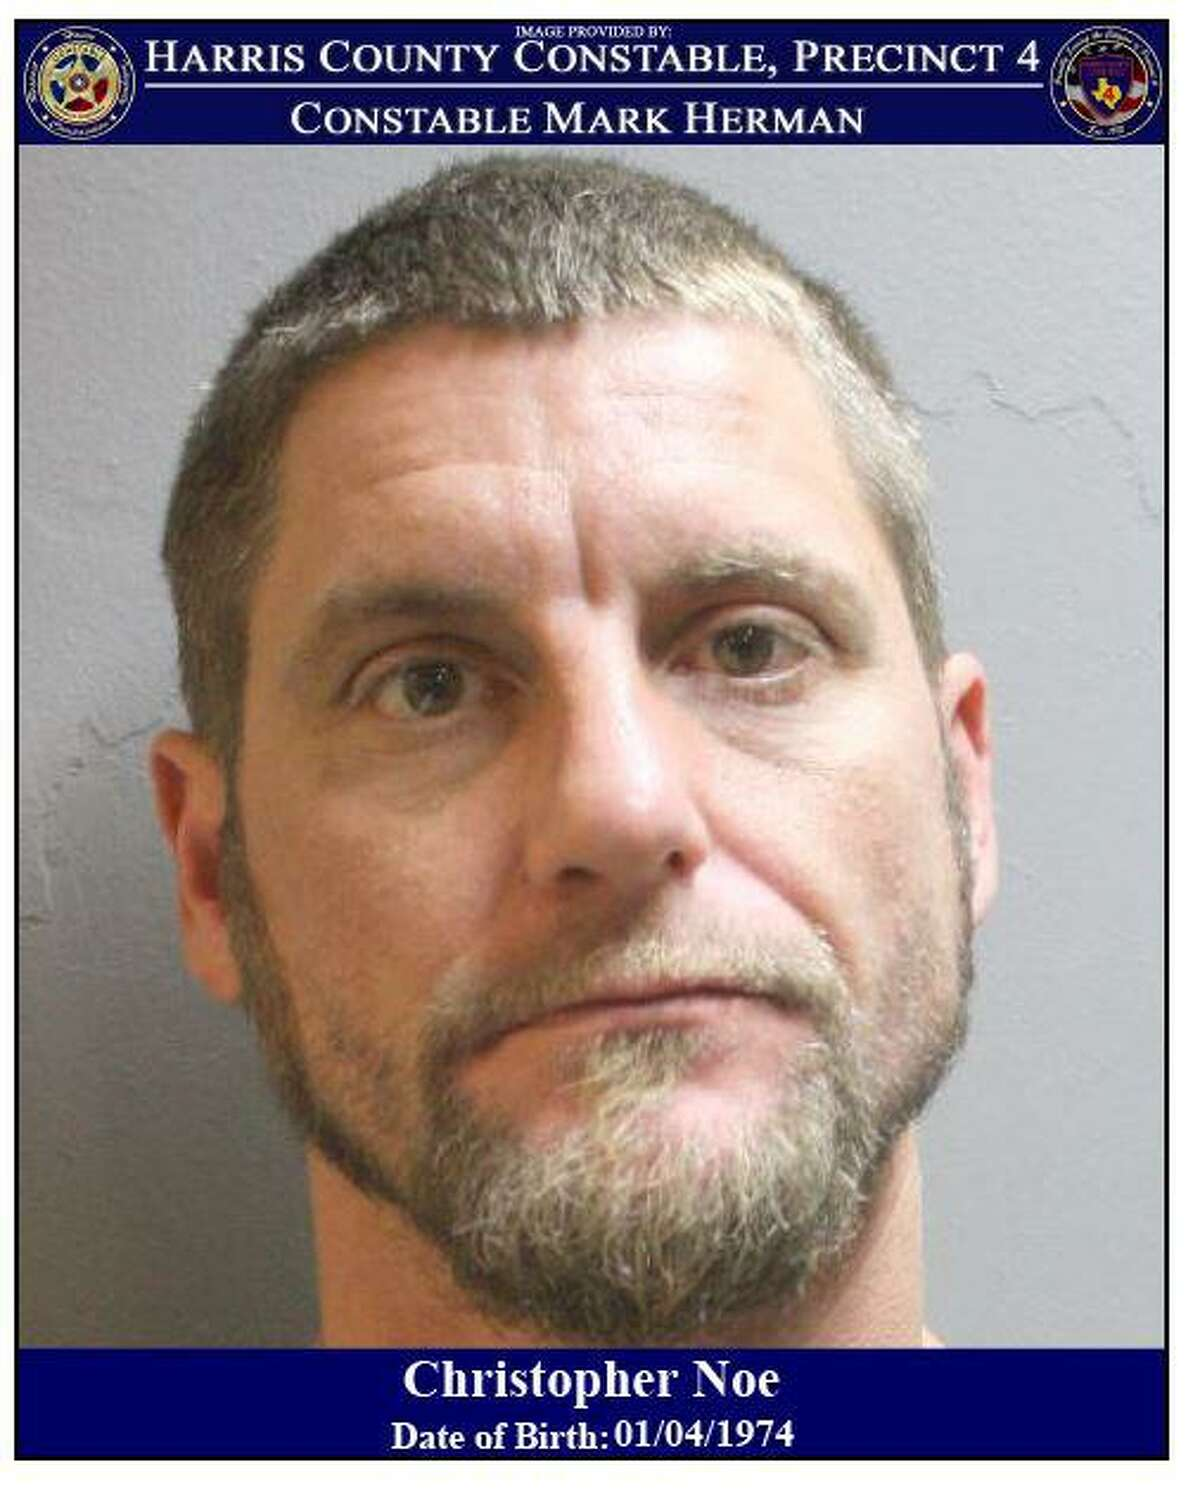 Christopher Noe is wanted by deputies with Harris County Precinct 4 Constable Mark Herman's office in connection with an illegal dumping case in west Harris County.